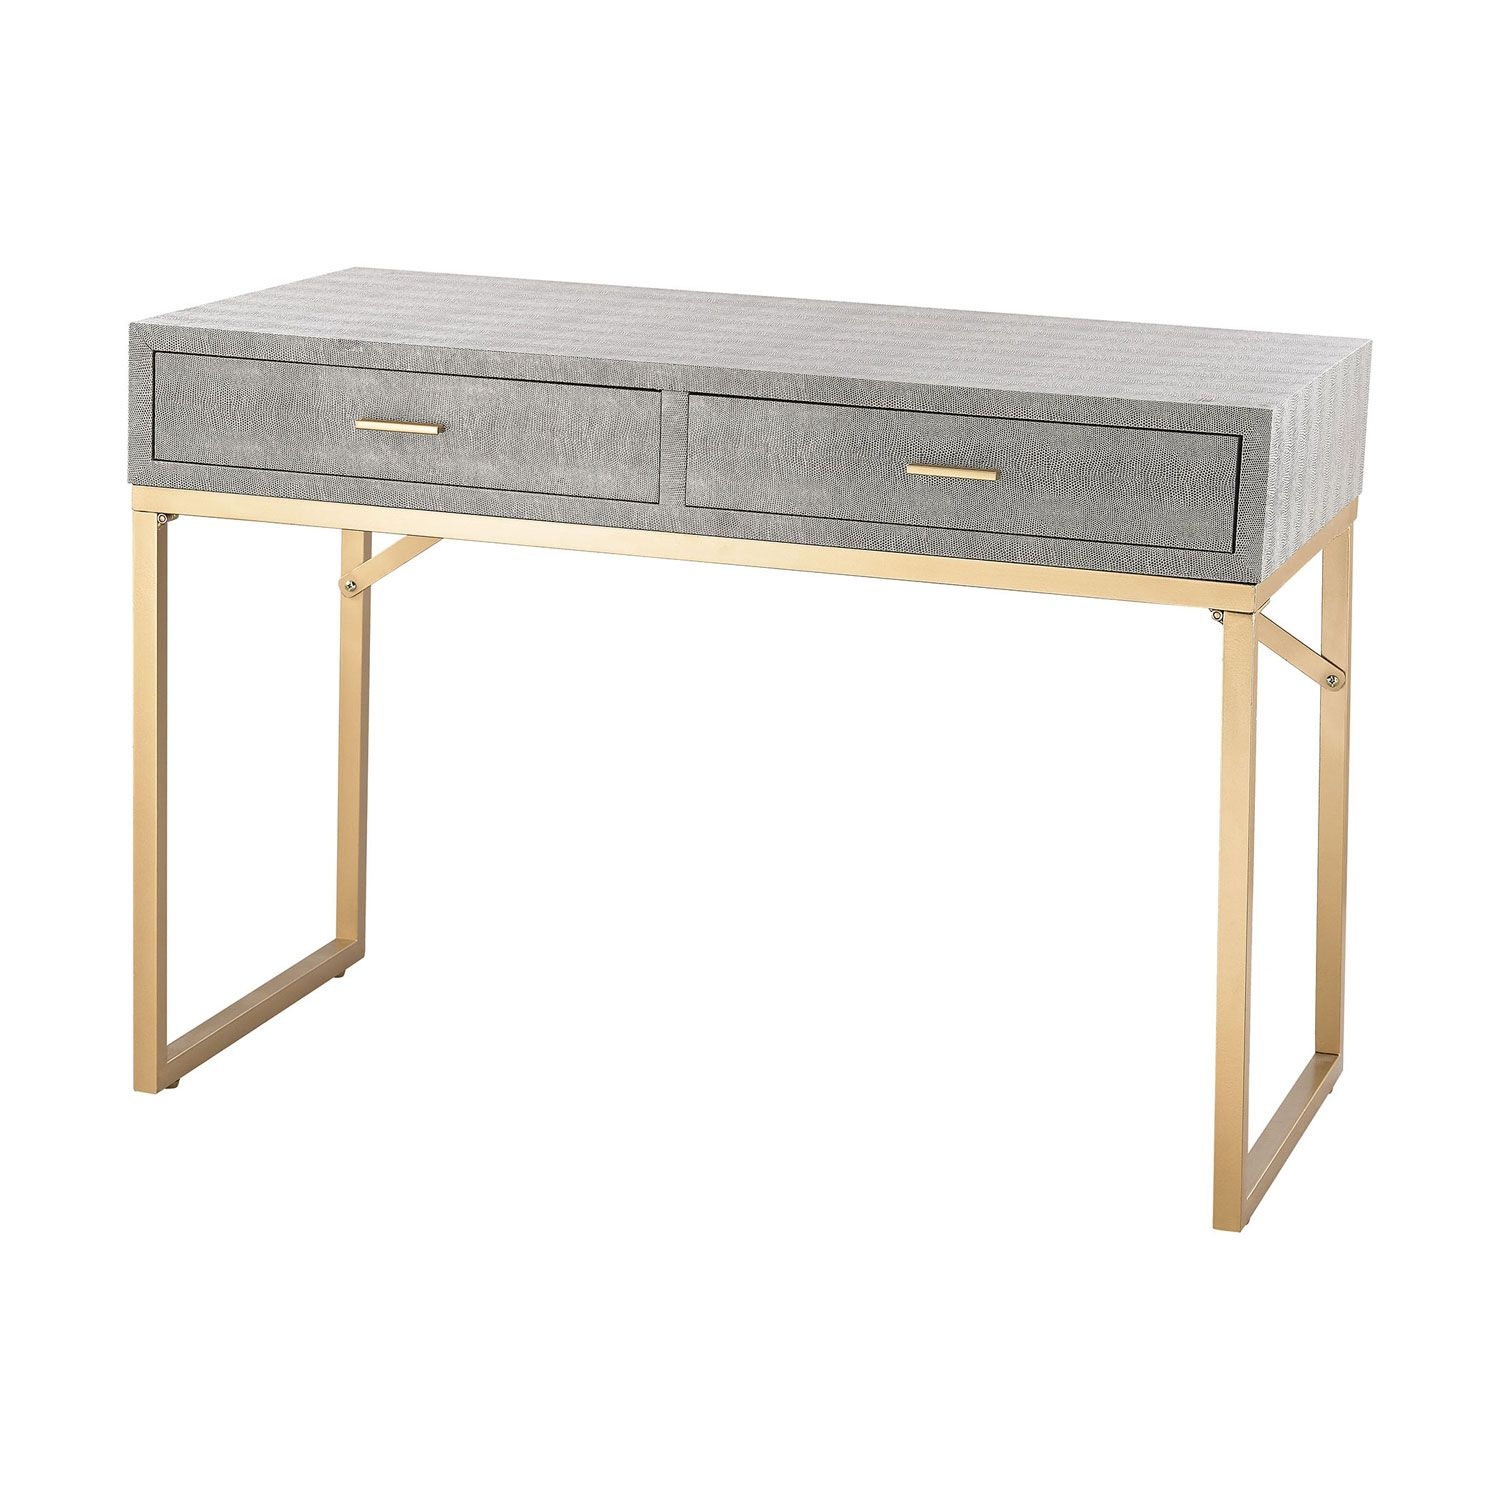 desk writing french wood fice contemporary salers gray solid wash